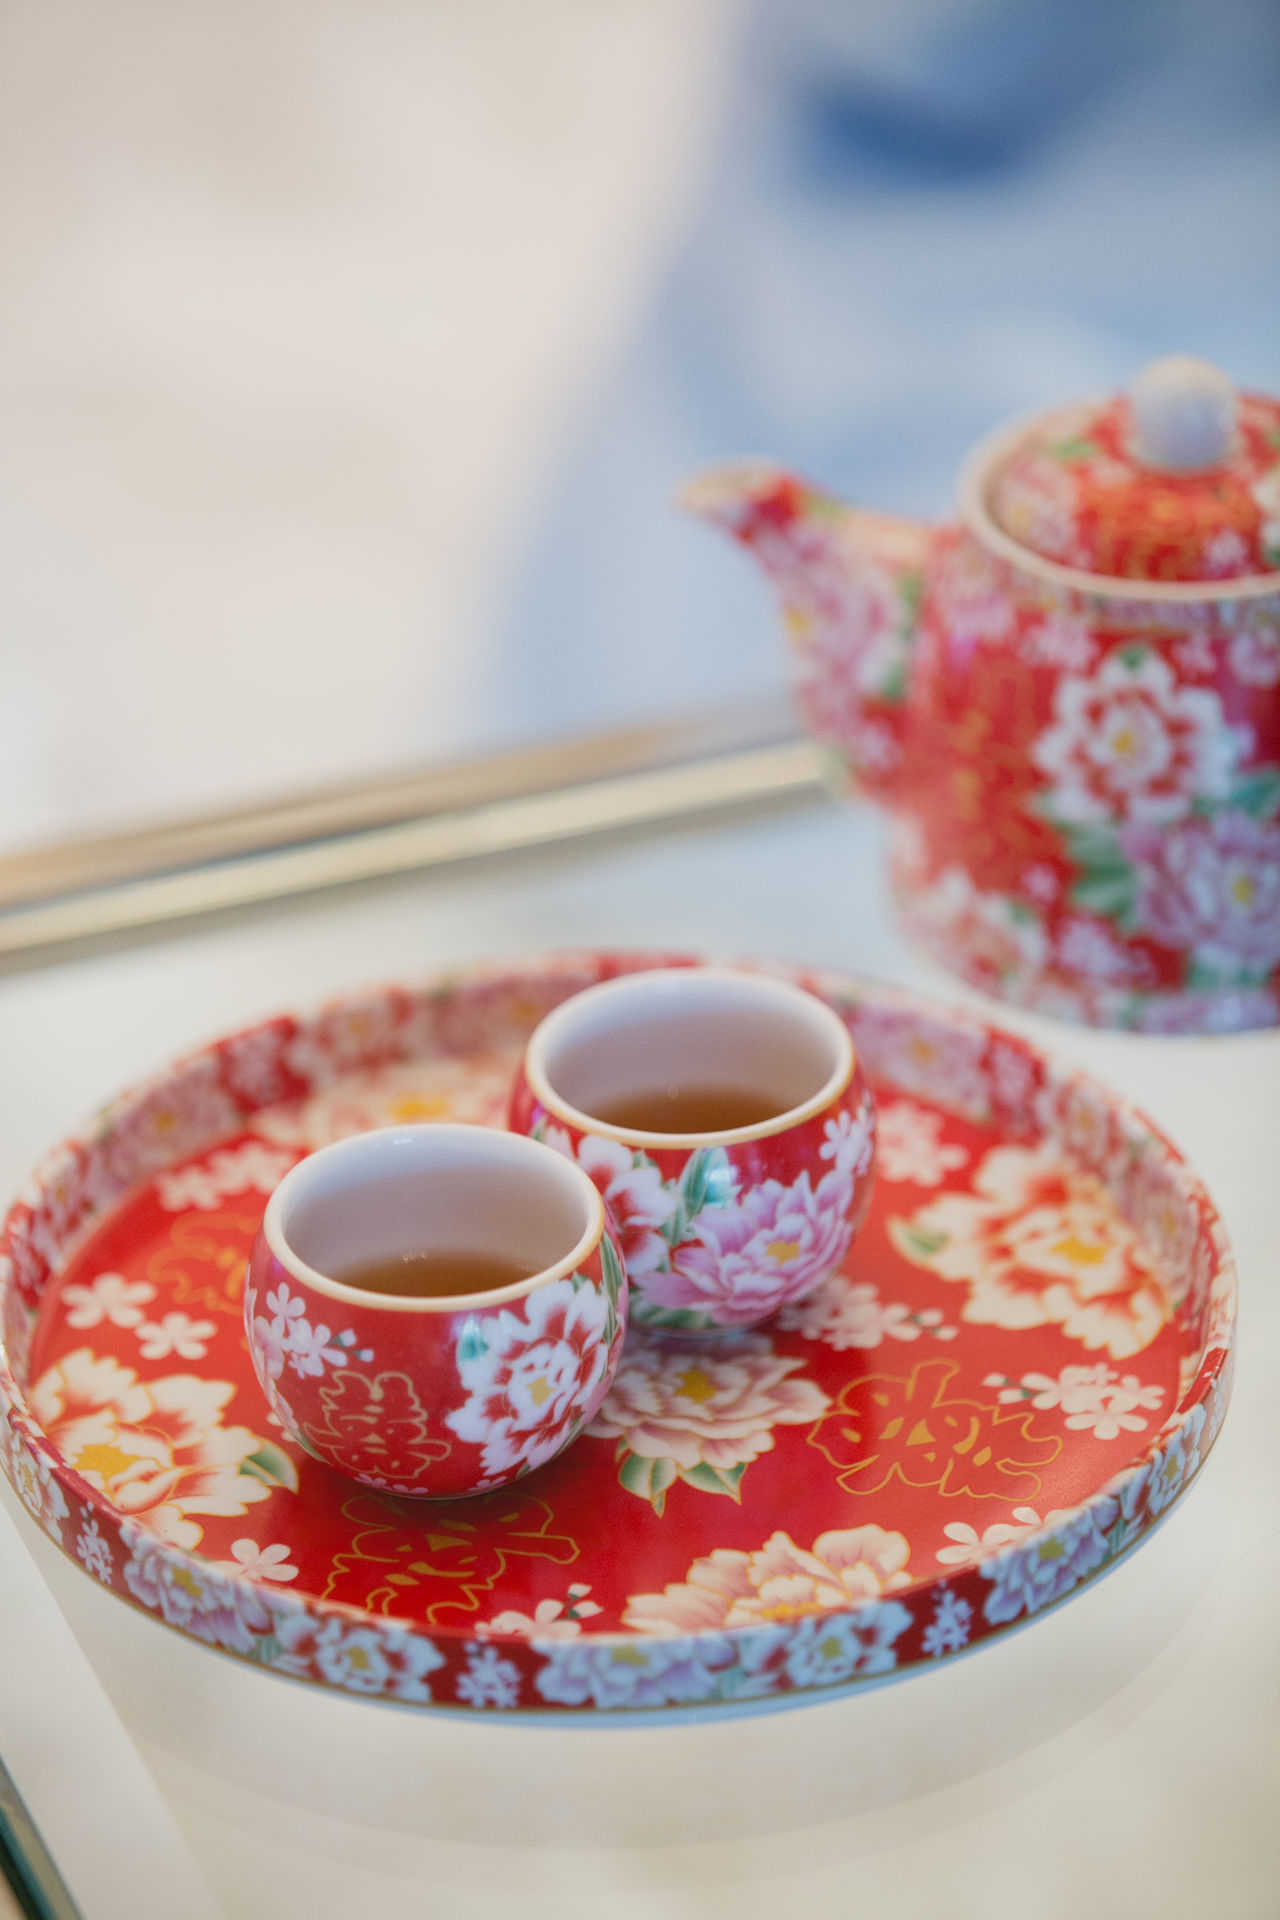 Chinese Ceramic Bowls Chinese Ceremony Close-up Cup Day Drink Focus On Foreground Food And Drink Freshness Healthy Eating Indoors  Mint Tea No People Plate Refreshment Saucer Table Tea - Hot Drink Tea Cup Teapot